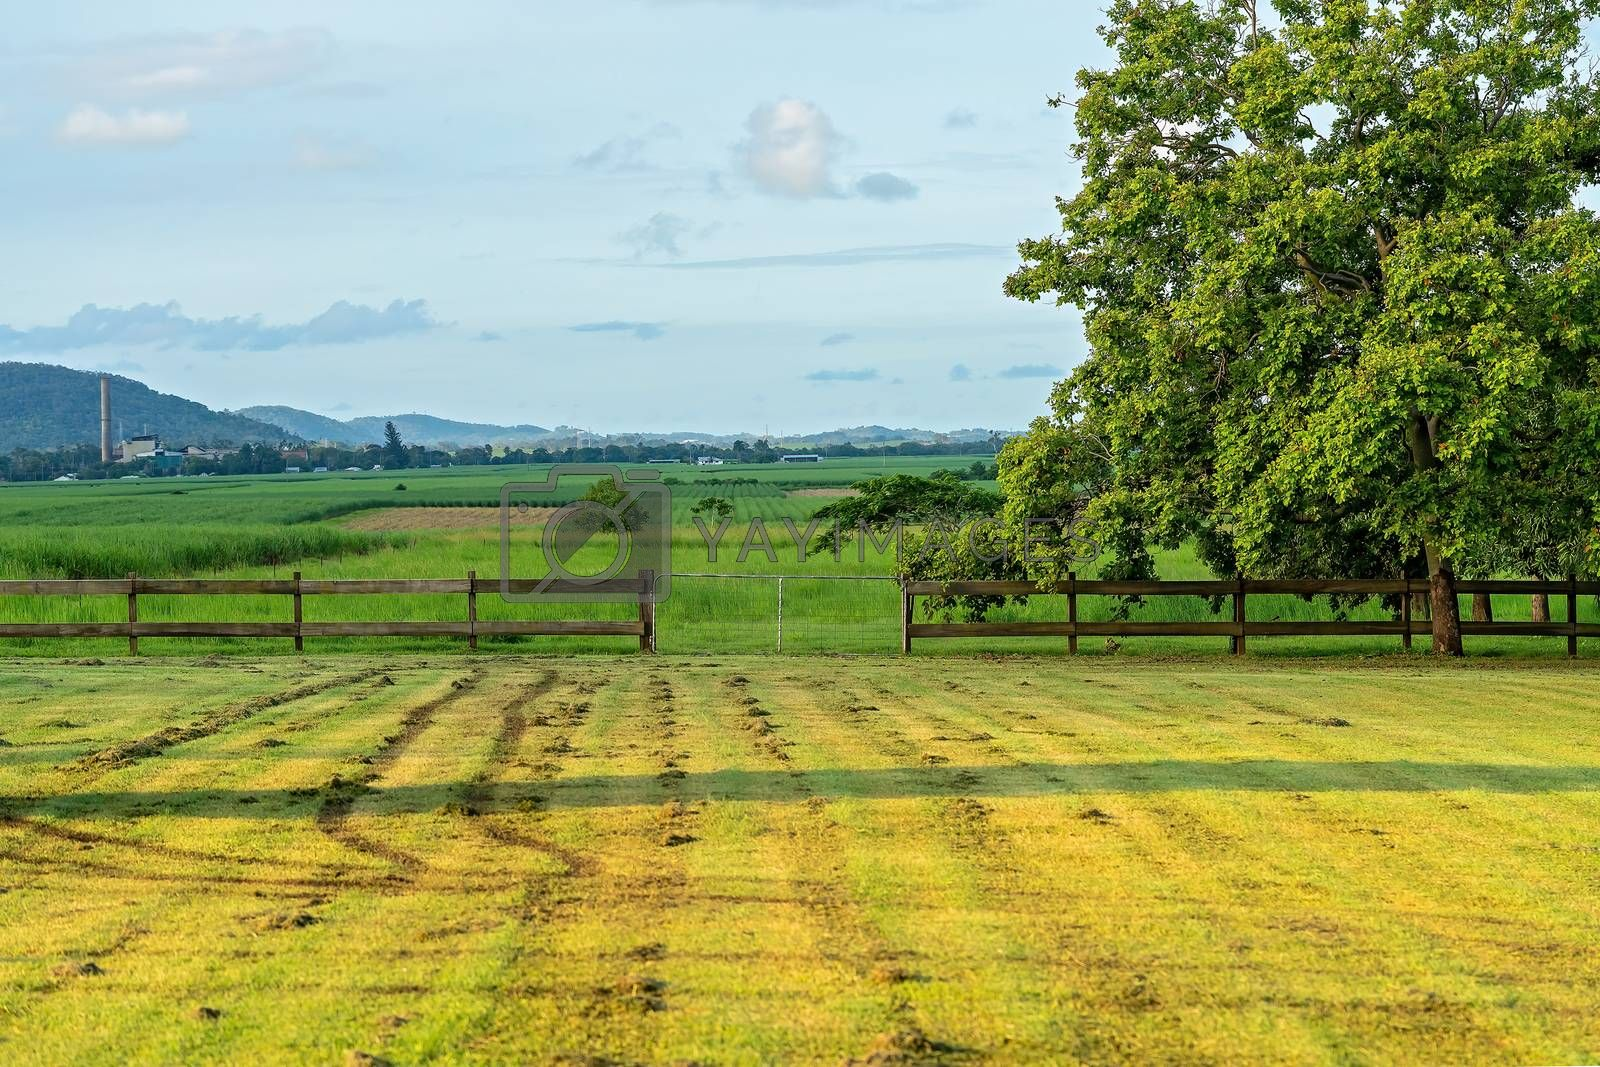 Freshly mowed lawn with late afternoon light casting shadows, with large trees and overgrown paddock in the background, a sugar mill on the horizon